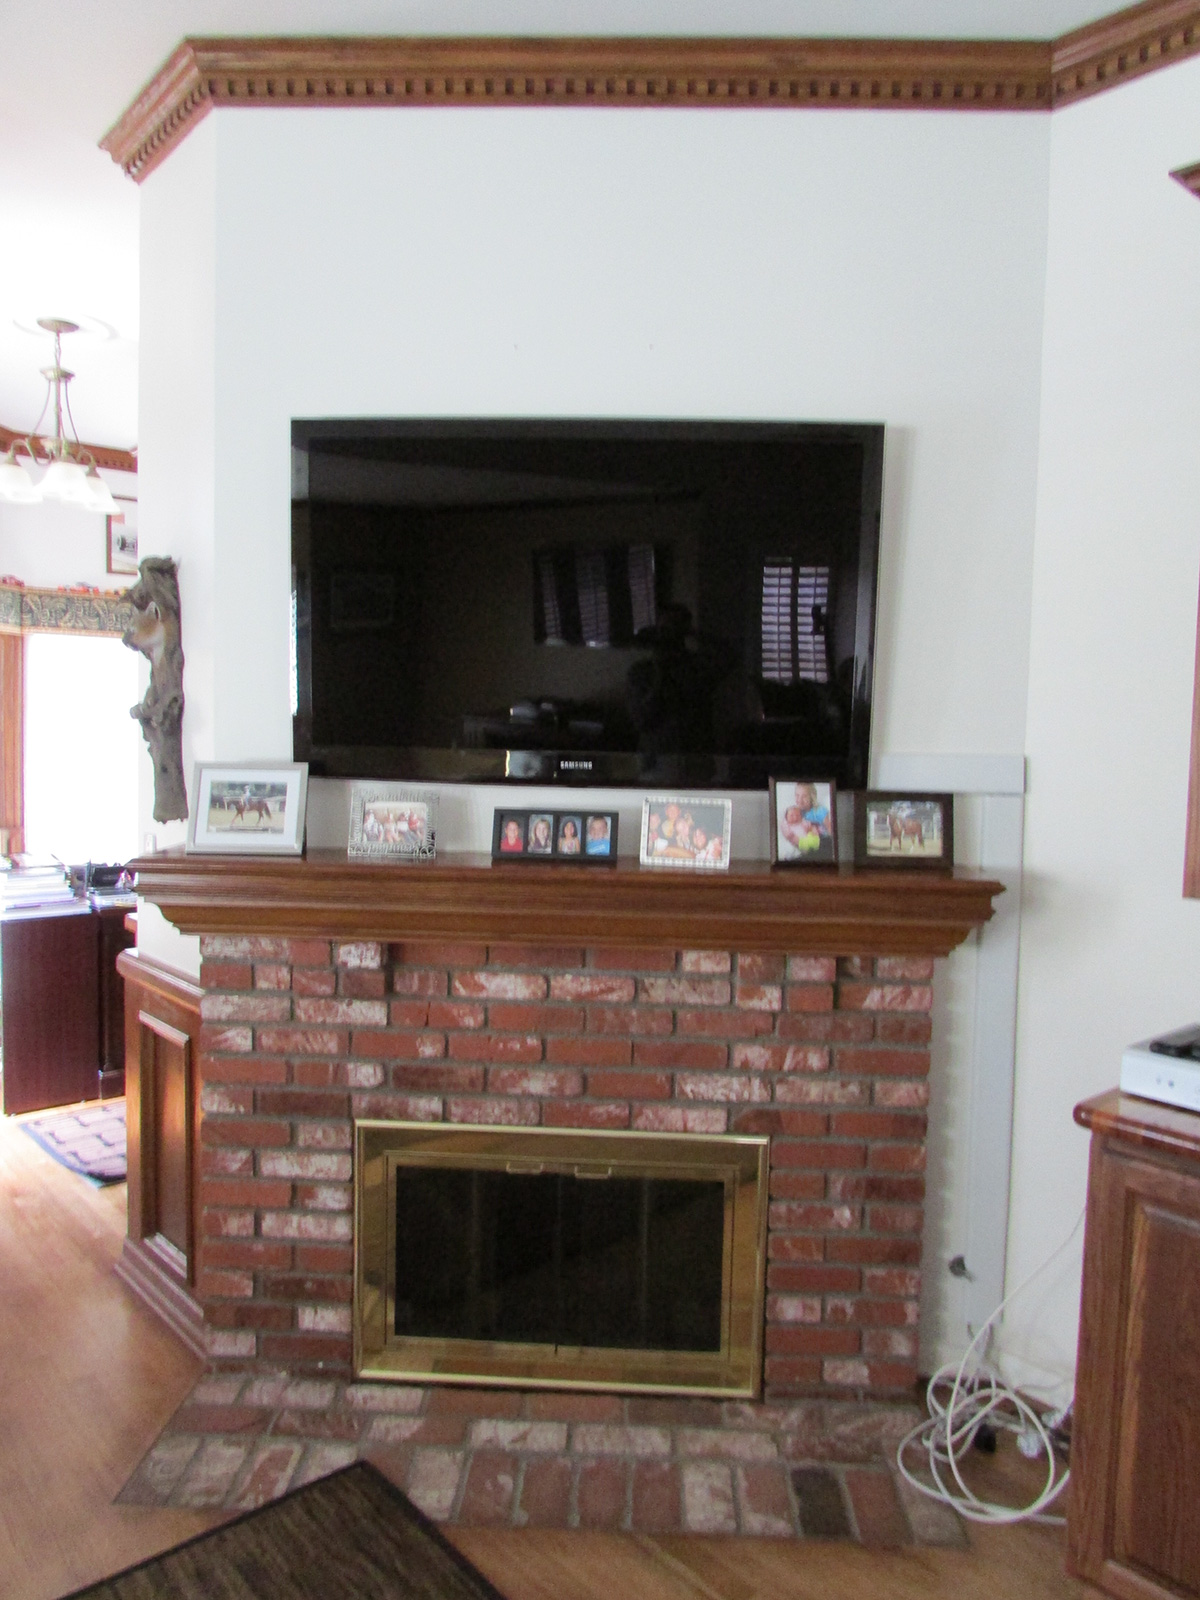 Living room fireplace view